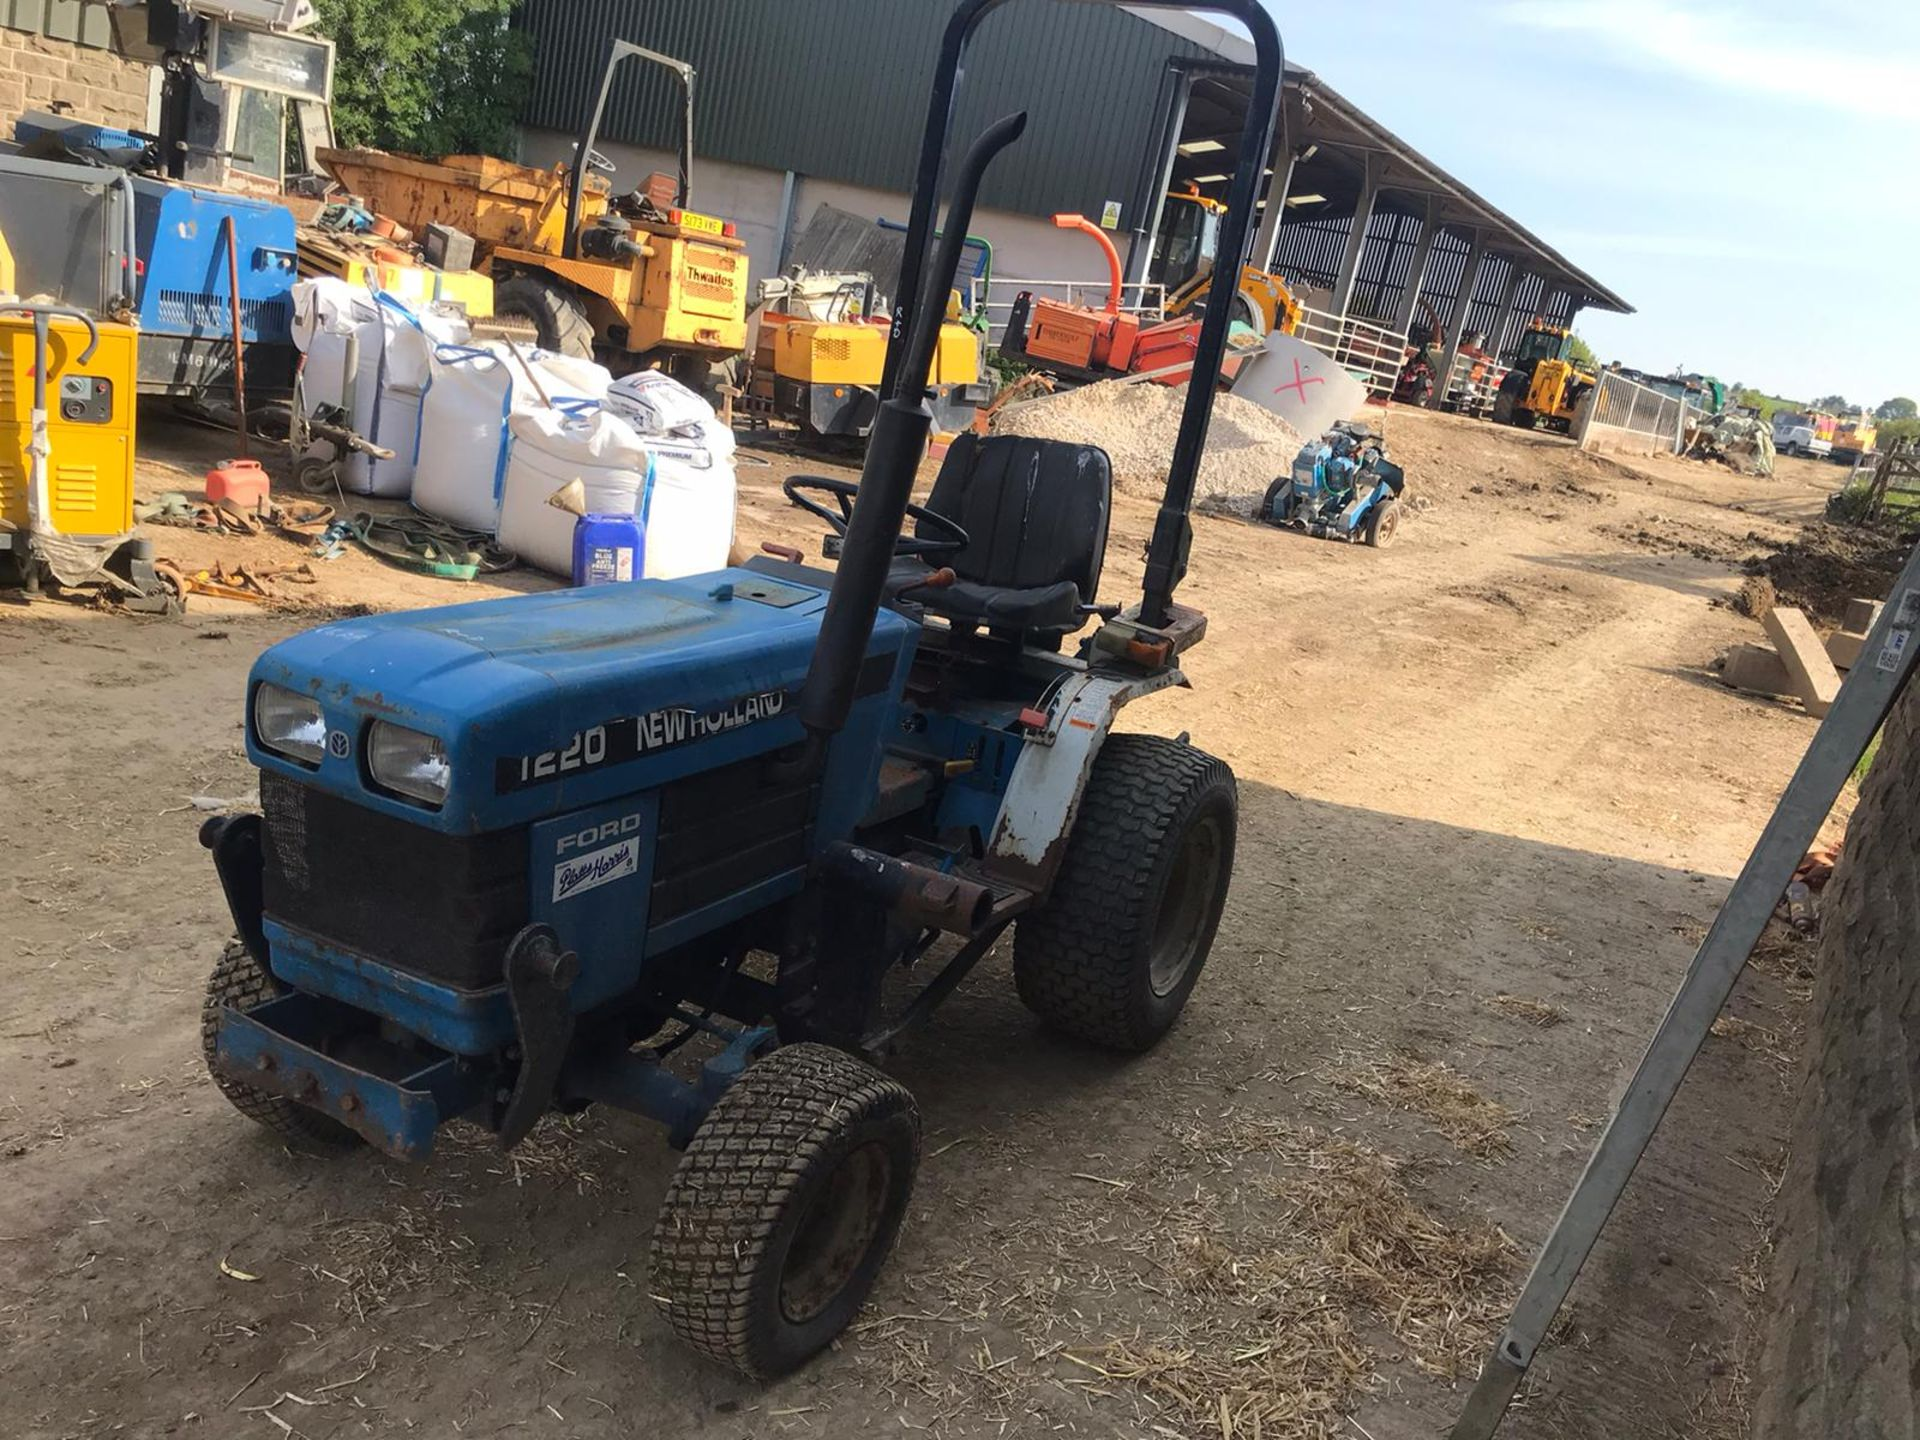 NEW HOLLAND 1220 COMPACT TRACTOR, RUNS AND DRIVES, CANOPY *PLUS VAT* - Image 2 of 6